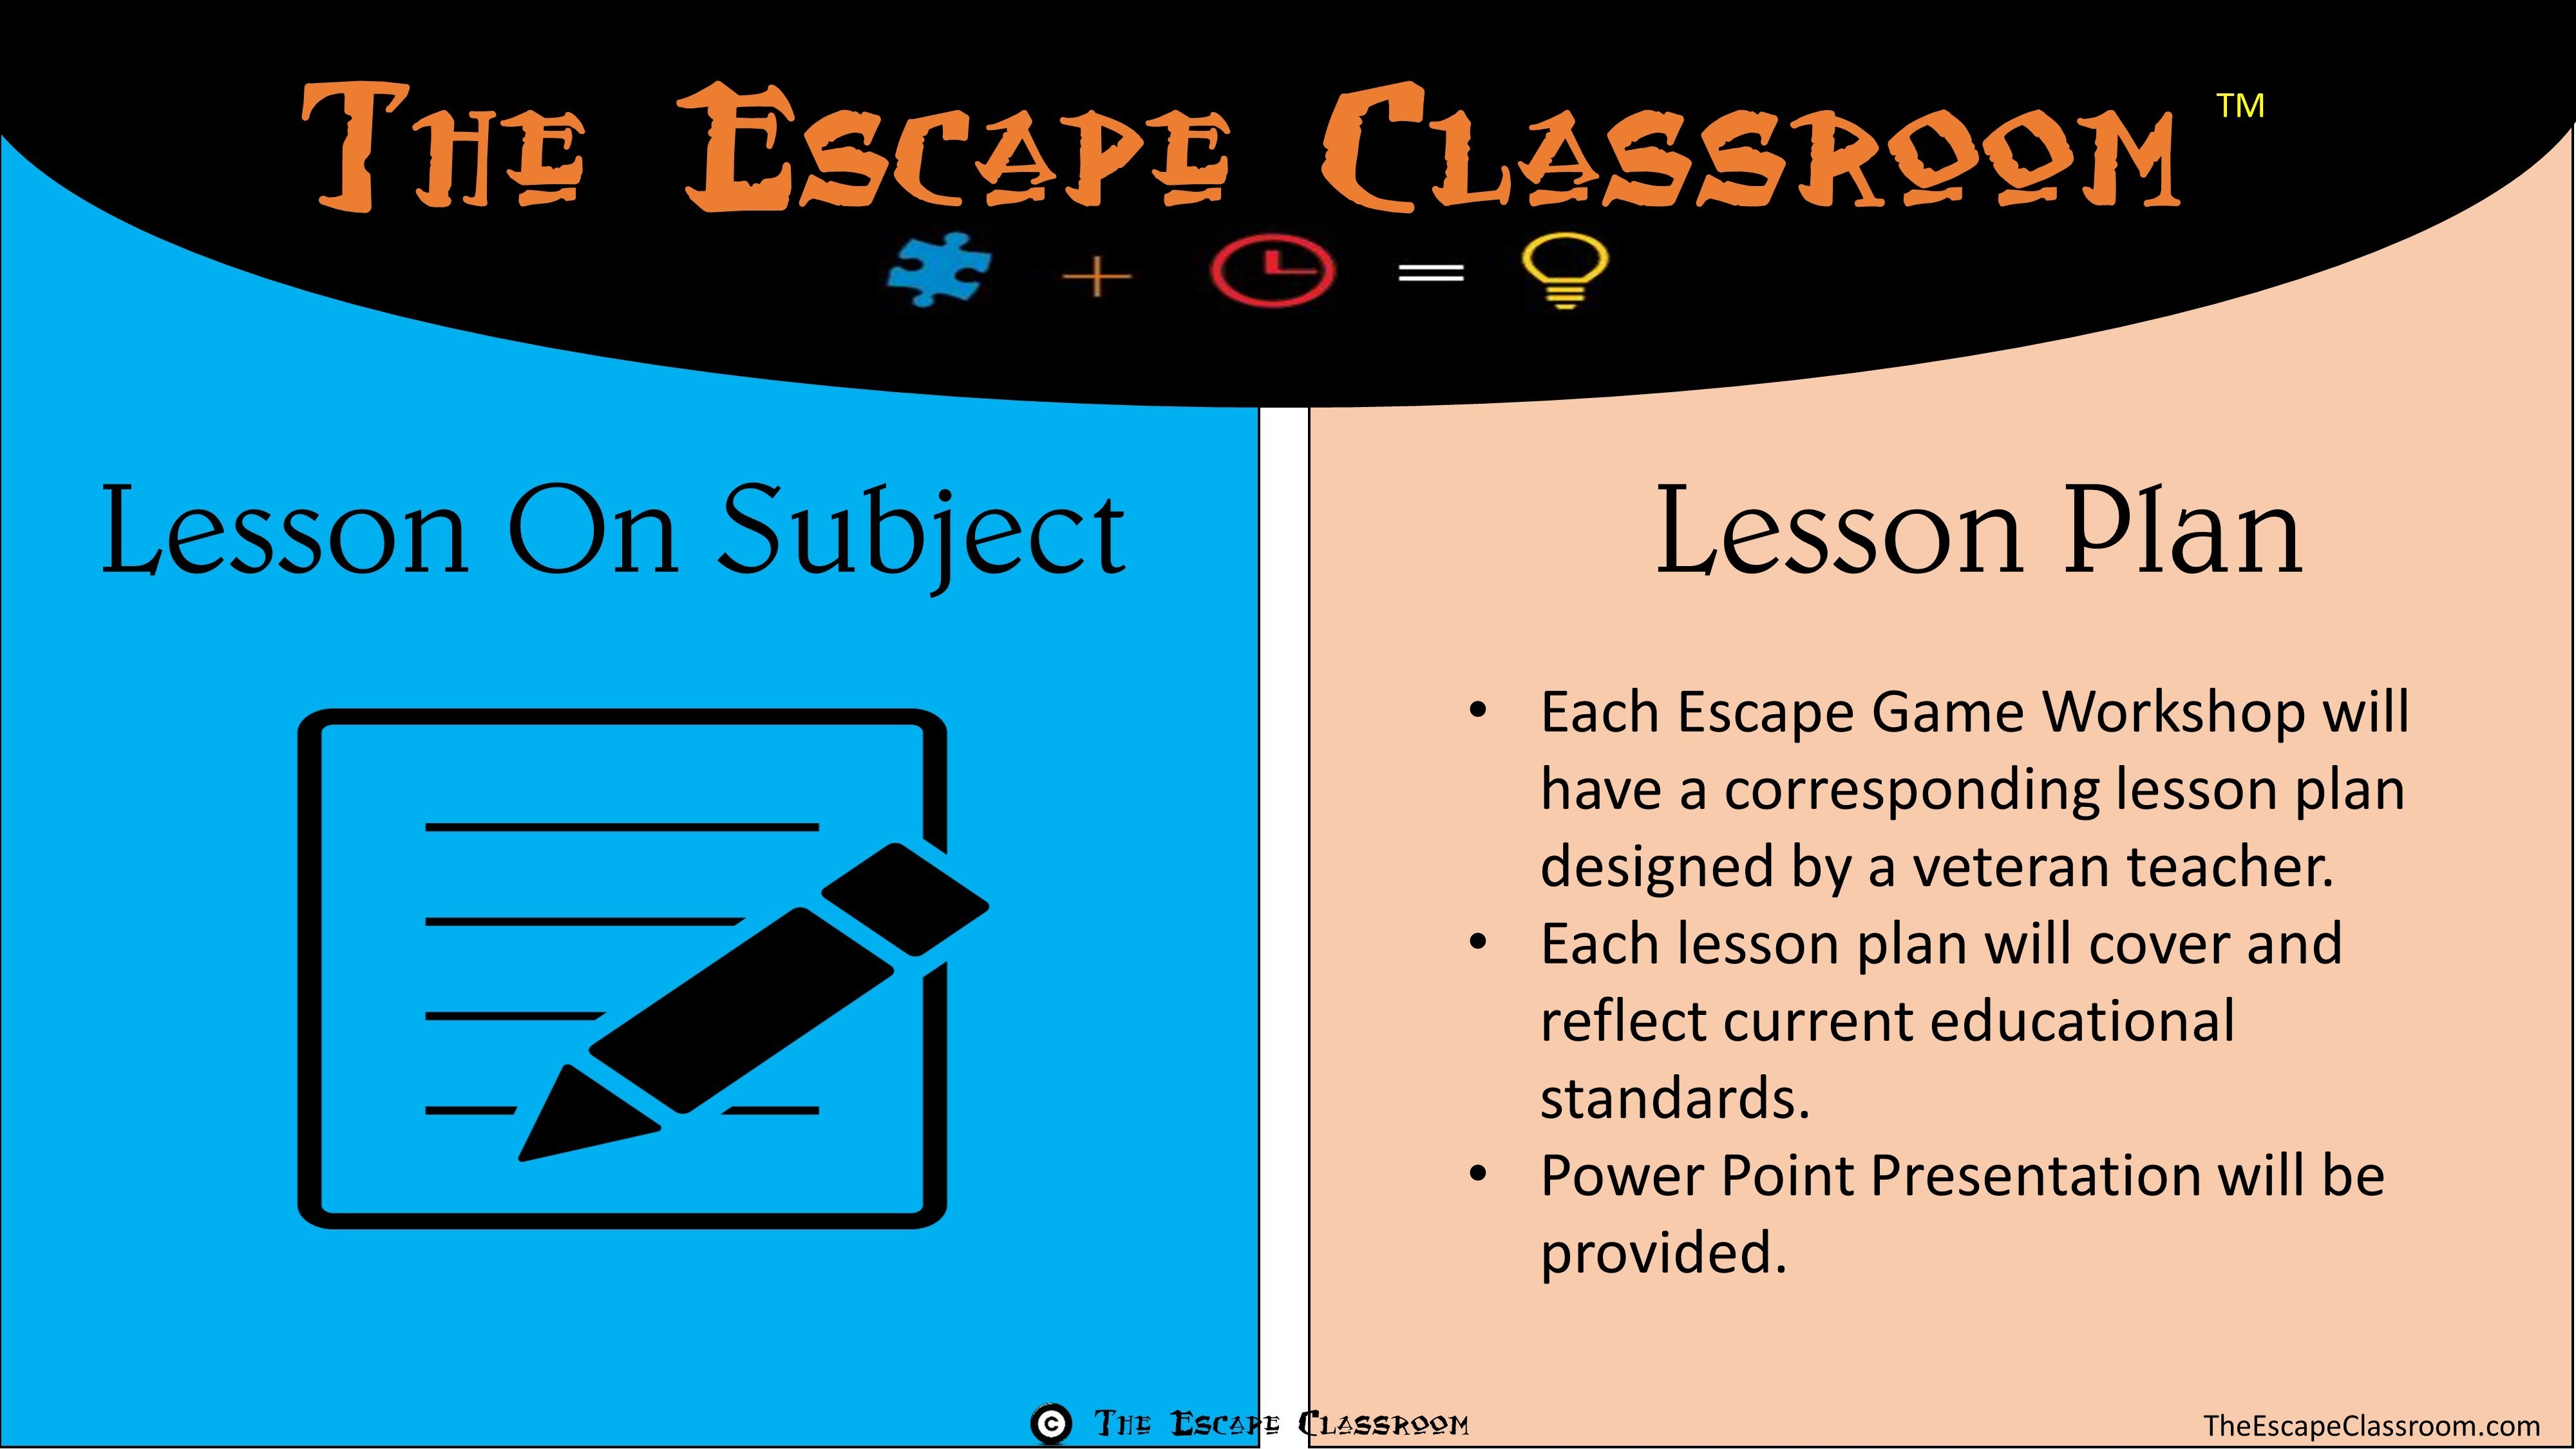 Chemistry periodic table escape 1 teacher license the escape the periodic table periods vs groups metals vs nonmetals vs metalloids naming element families and describe and explain periodic trends in gamestrikefo Gallery